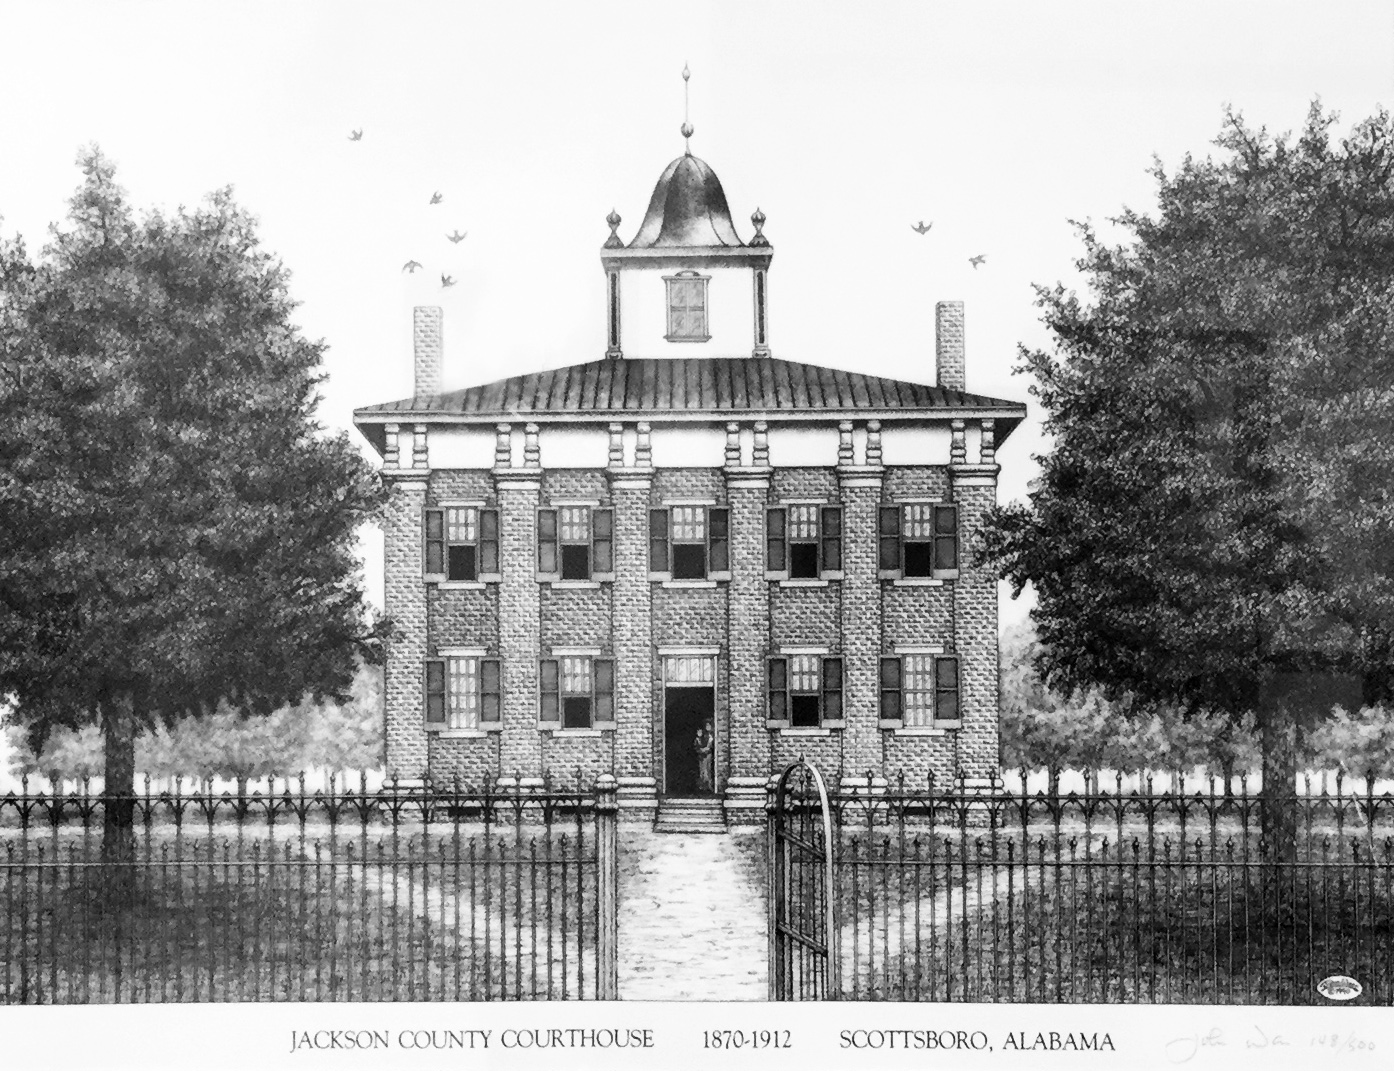 Alabama jackson county section - Courthouse Drawing Based On This Photo By John Warr